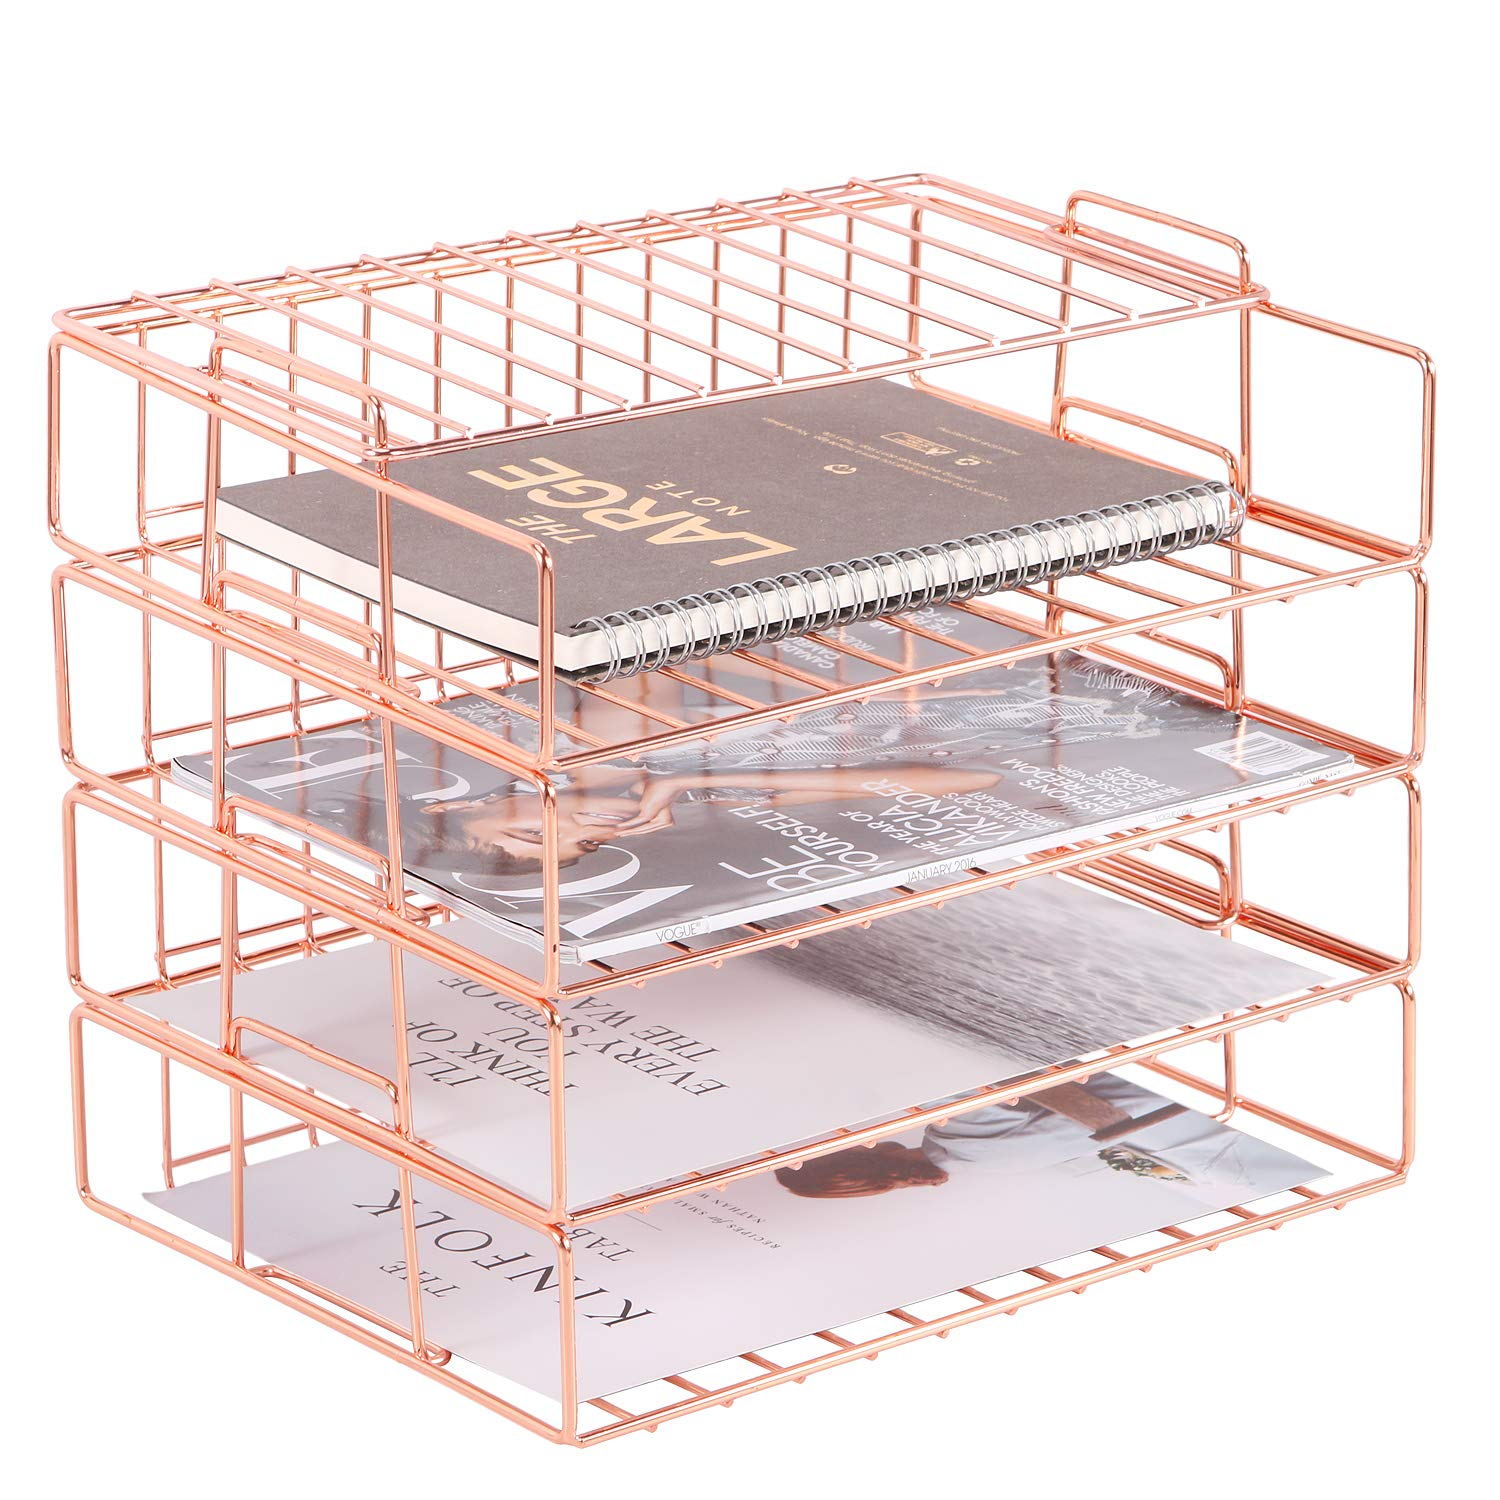 4 Tier Paper Organizer Tray Book and More Magazine Folder Wire Desk File Sorter Shelf for Mail Nugorise Stackable File Tray Document Rose Gold